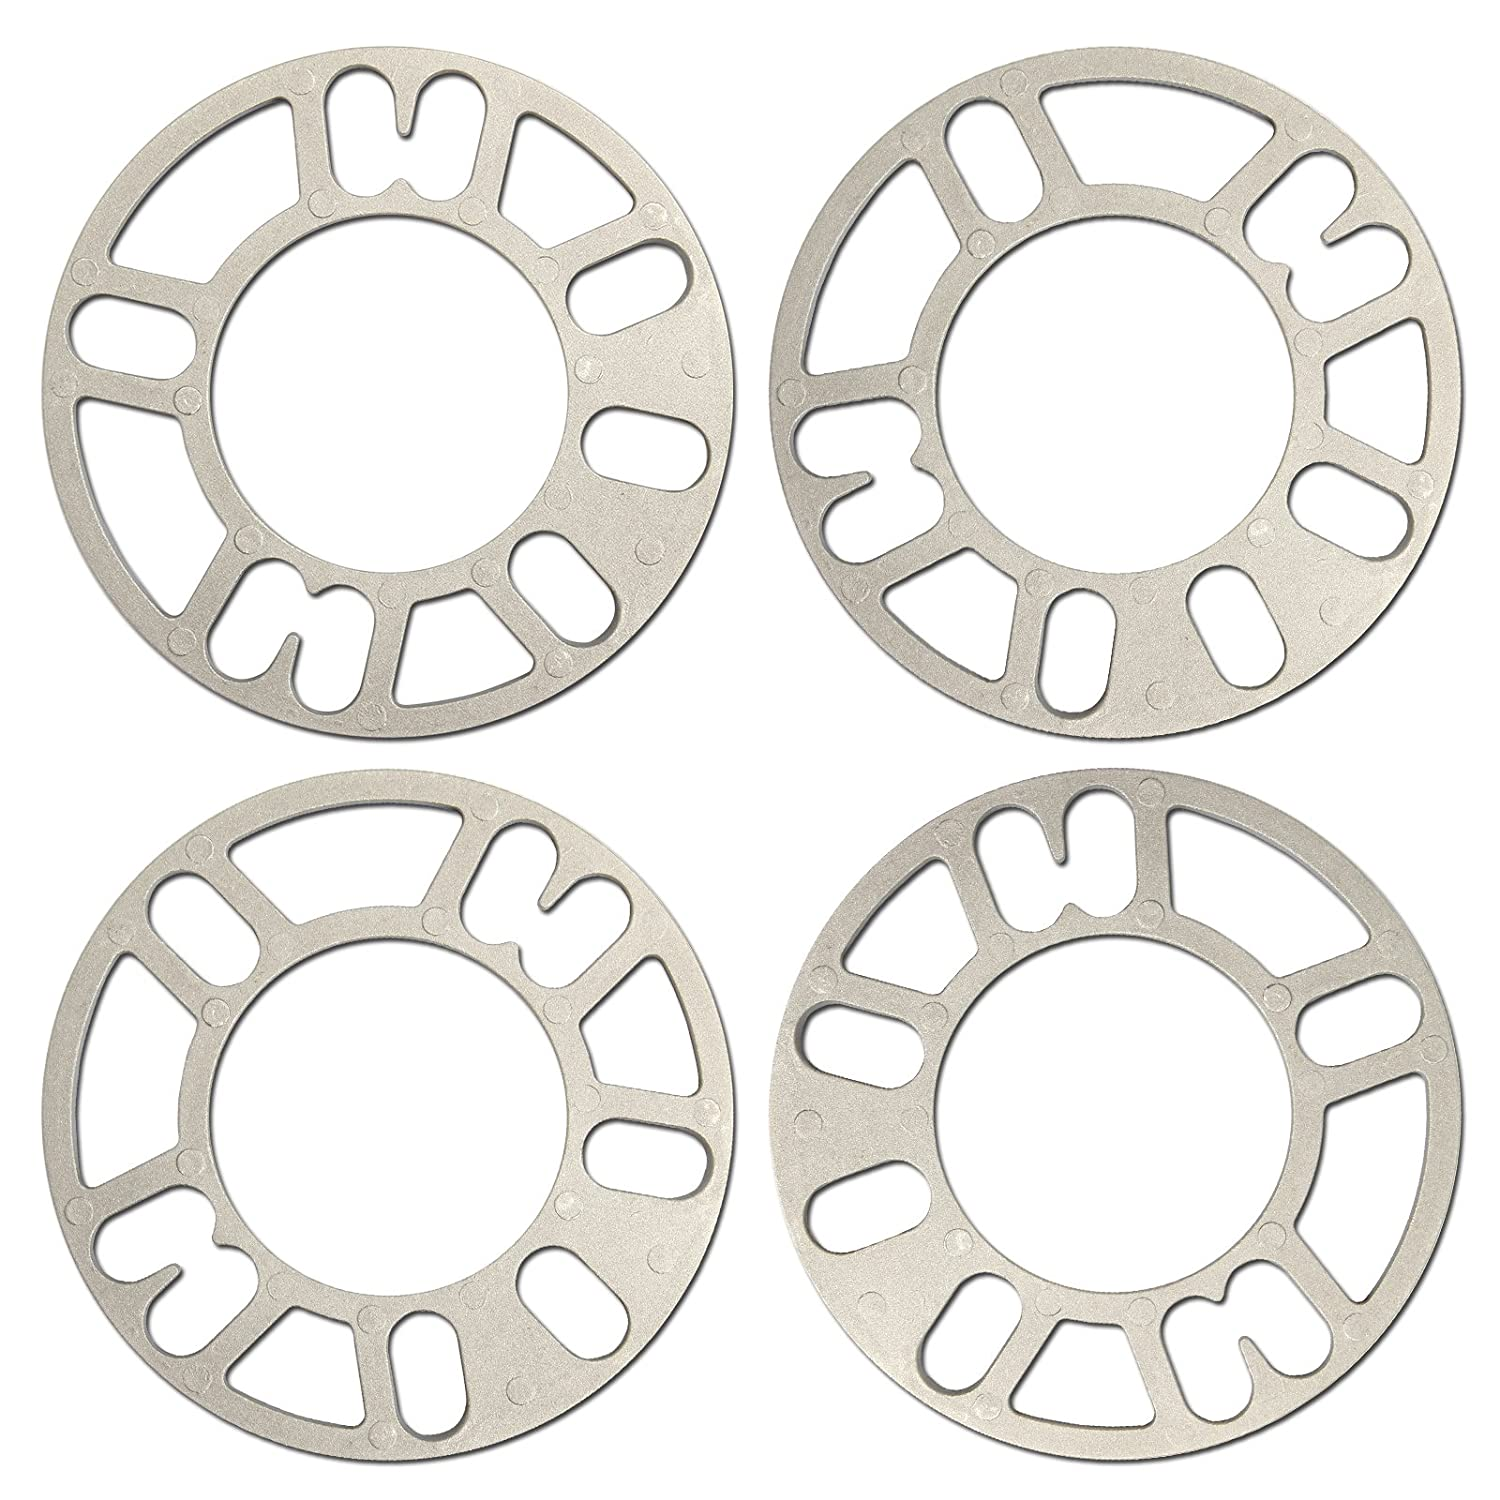 DHOUTDOORS 4 Pcs Alloy Universal Wheel Spacers Shims Spacer 5mm 4 and 5 Stud Fit